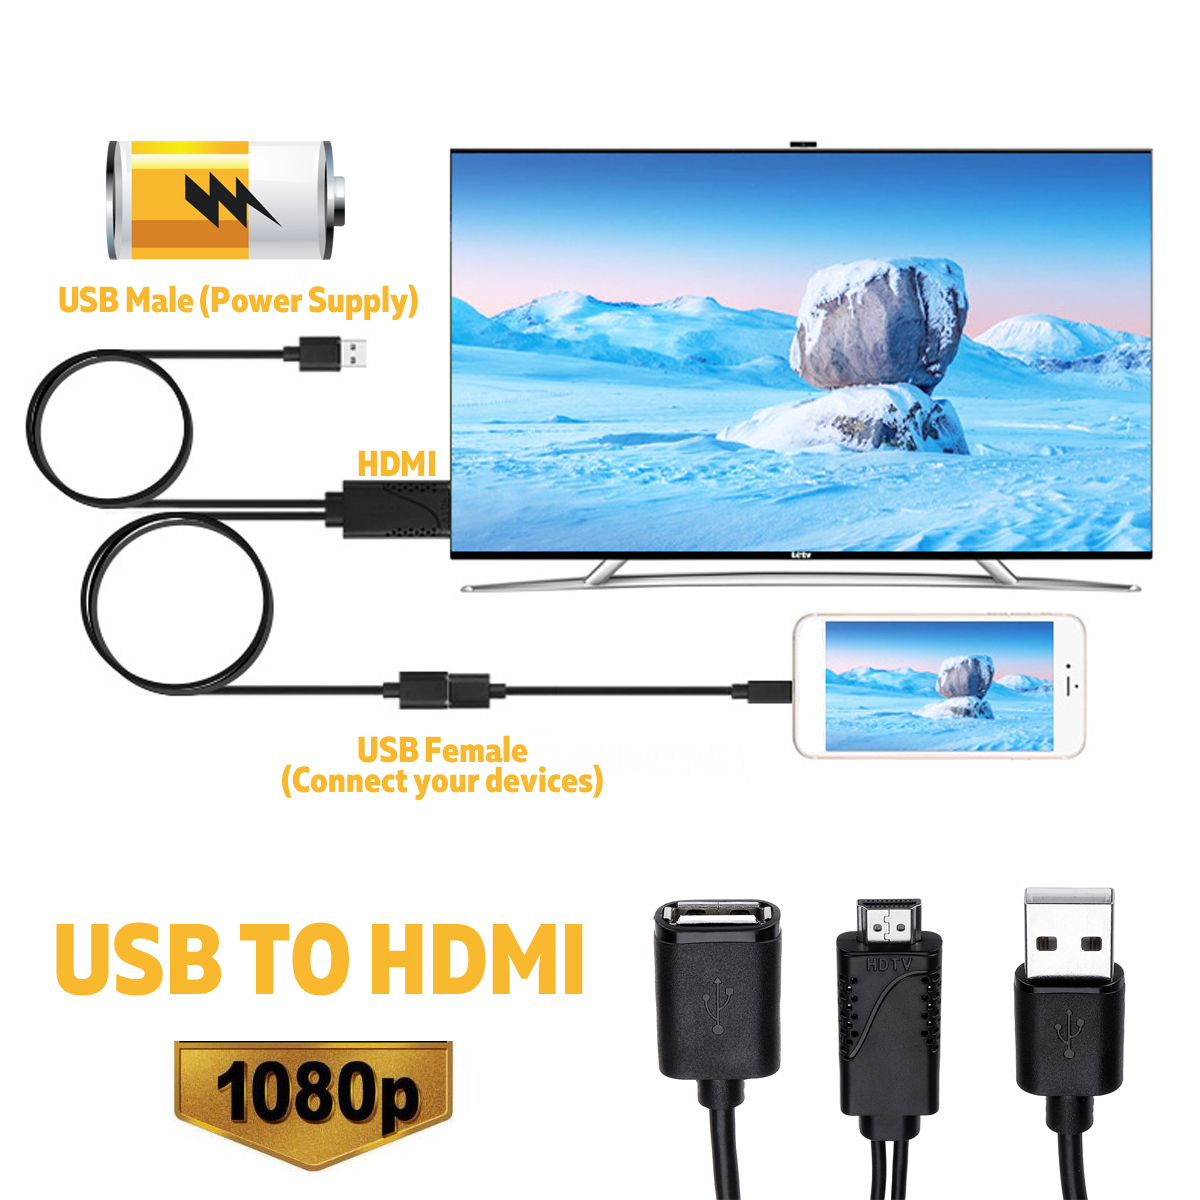 2 in 1 USB Female To HDMI Male HDTV Adapter Cable For HDTV Projector Displays